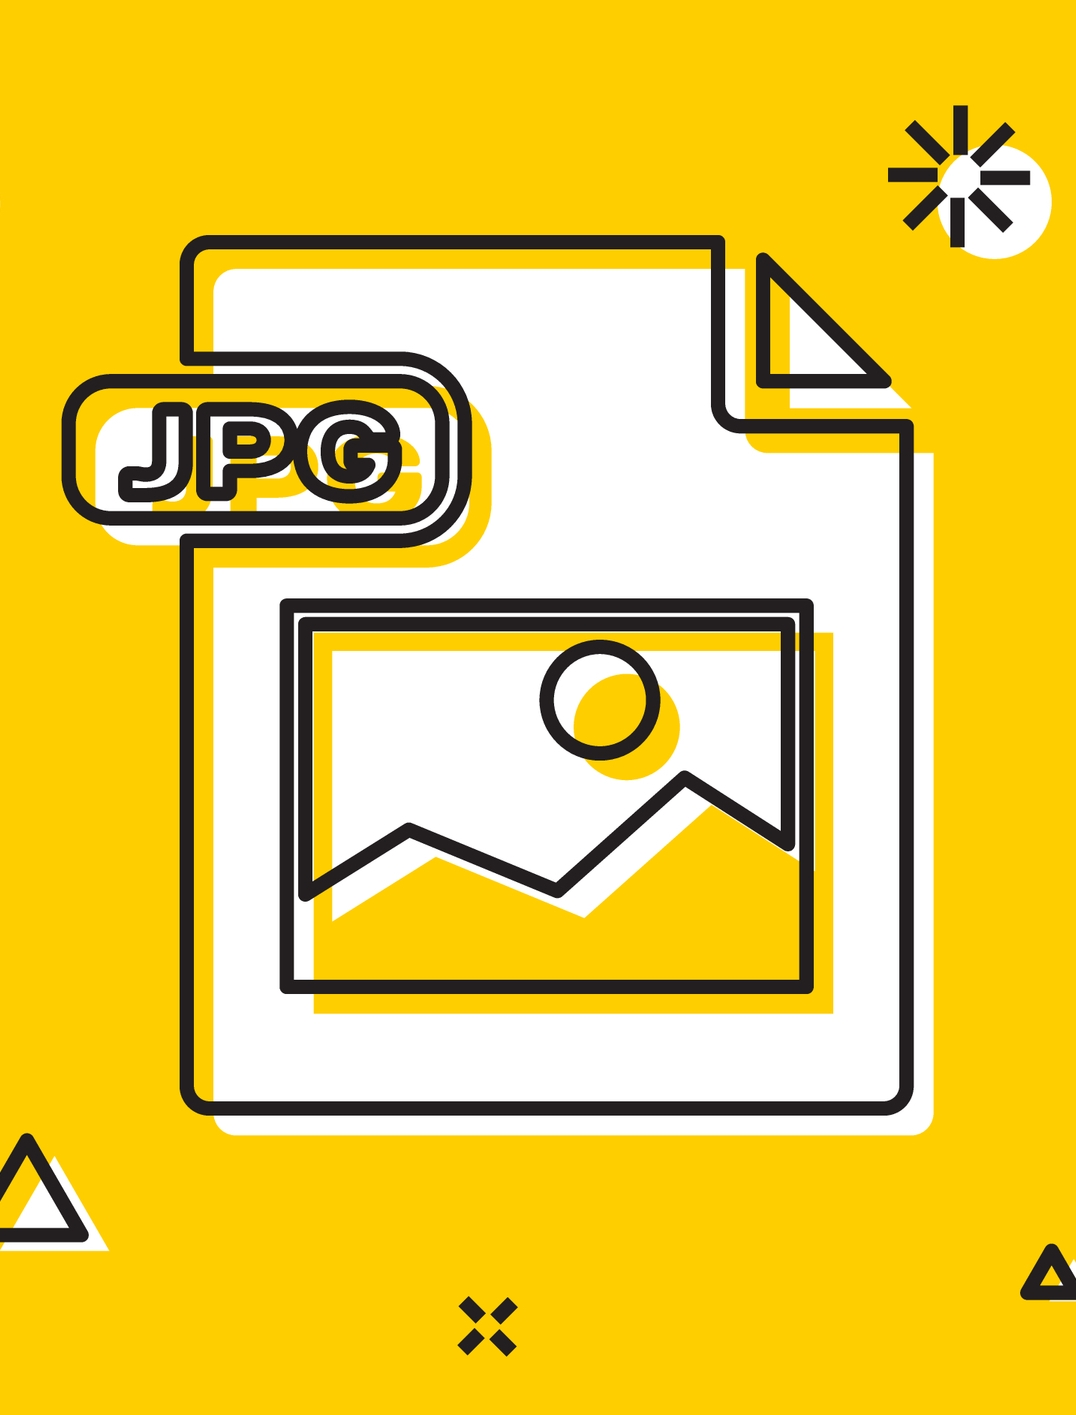 png vs jpeg featuring jpg format icon